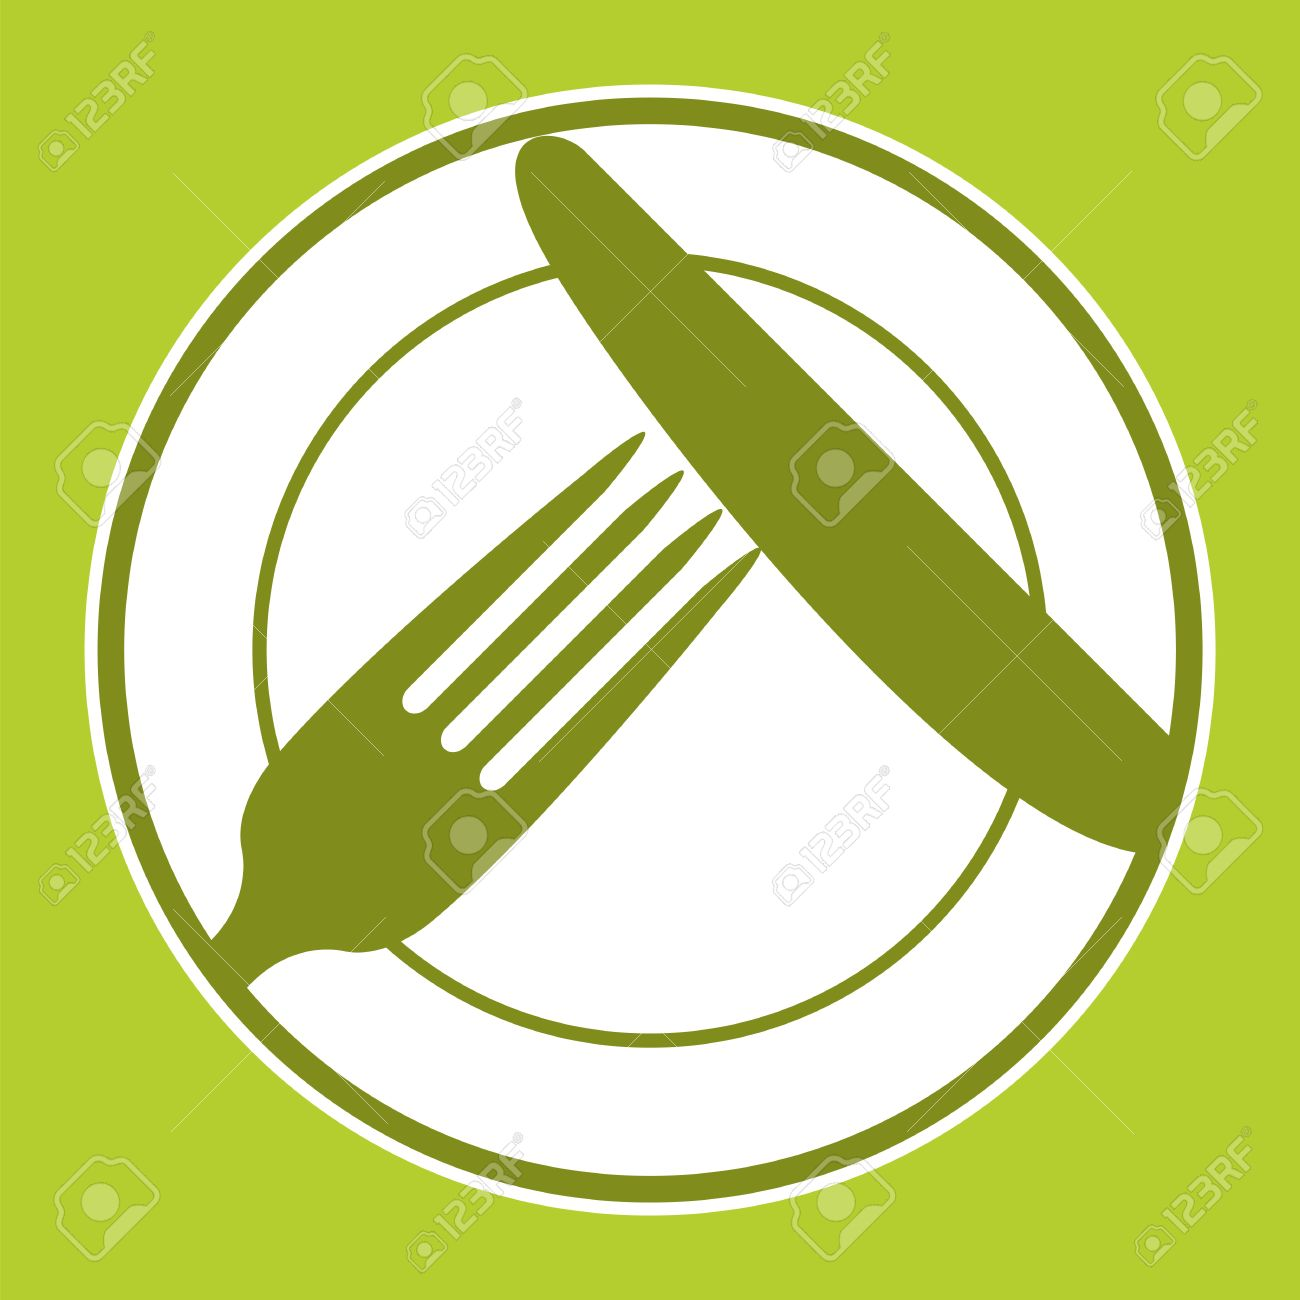 Plate, knife and fork. Restaurant menu design with cutlery symbols - 27902997